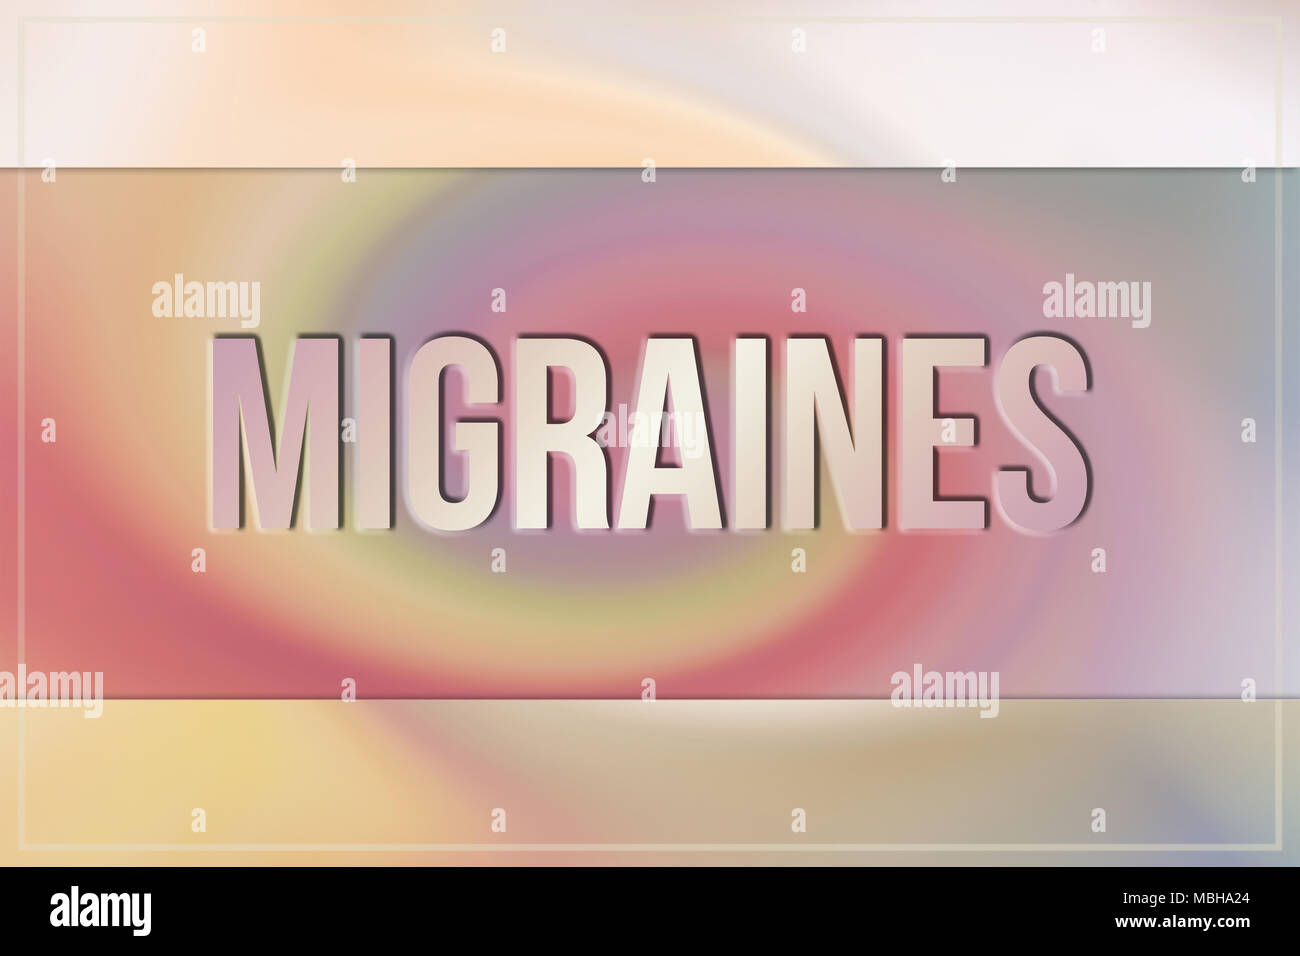 Migraines, medical & medication conceptual words, with twirl & colorful as background for web page, graphic design, catalog or wallpaper. - Stock Image